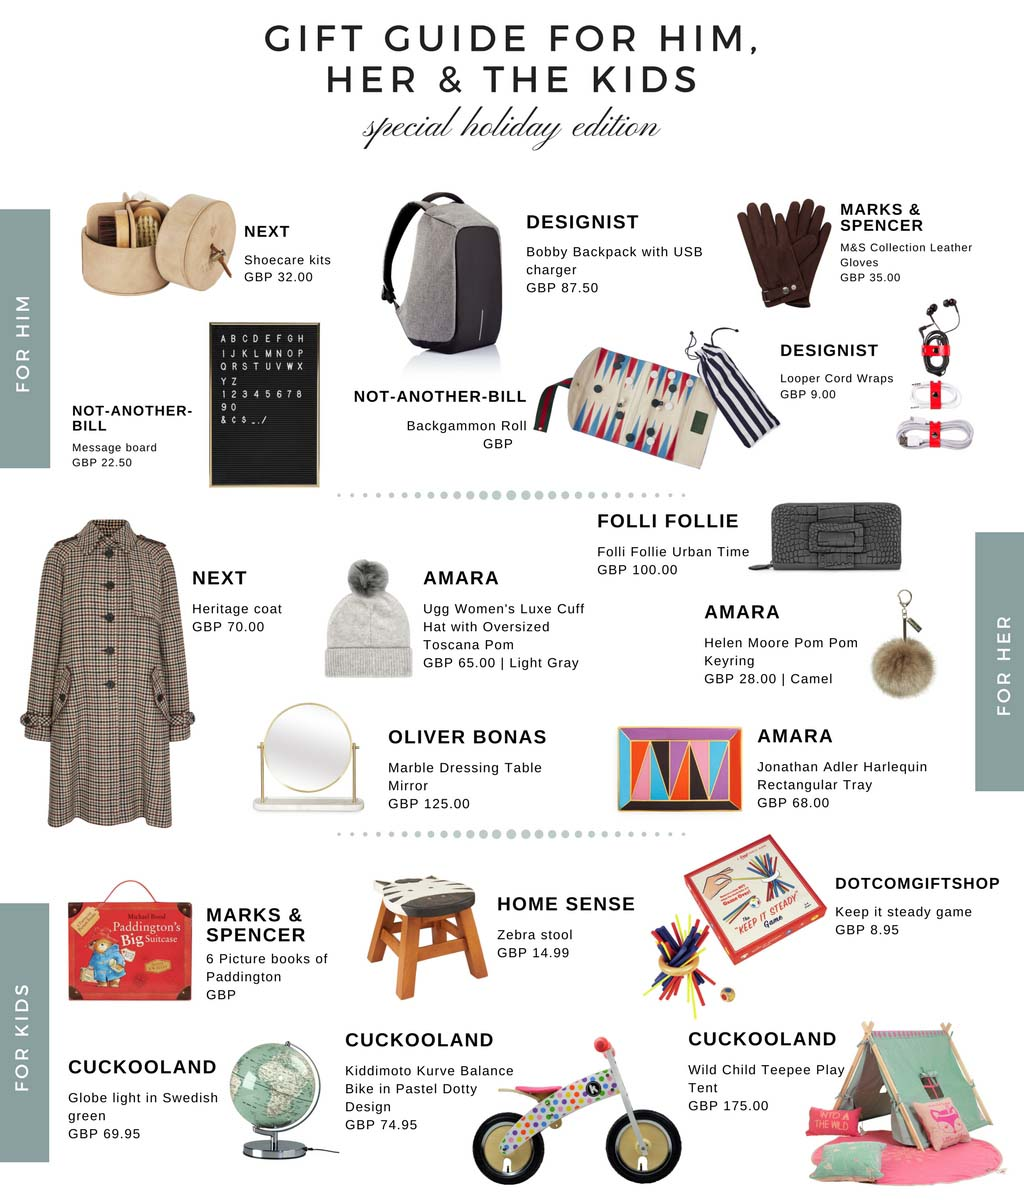 A moodboard with gifts for him, her and the kids